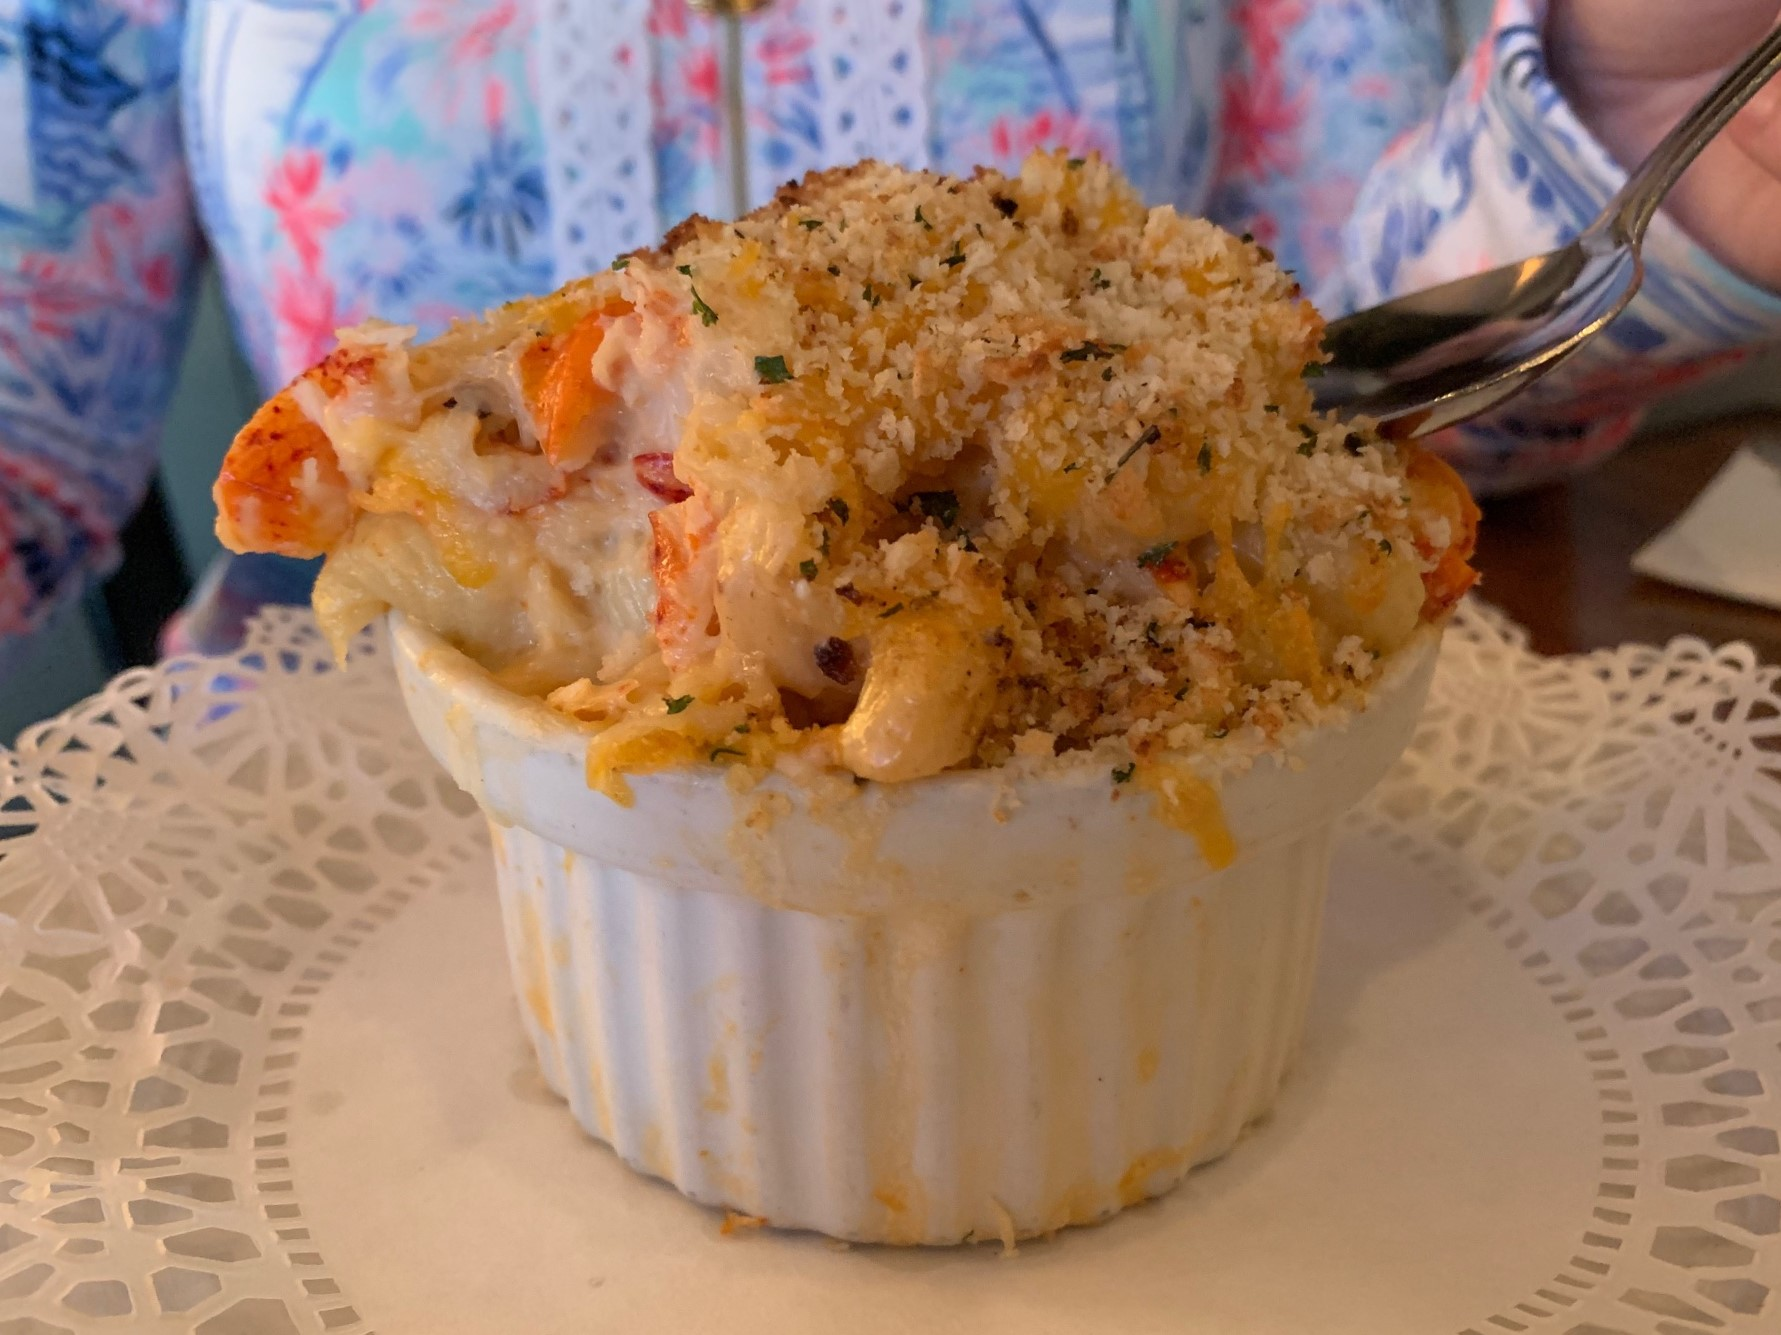 The delicious lobster mac n cheese at DWC.